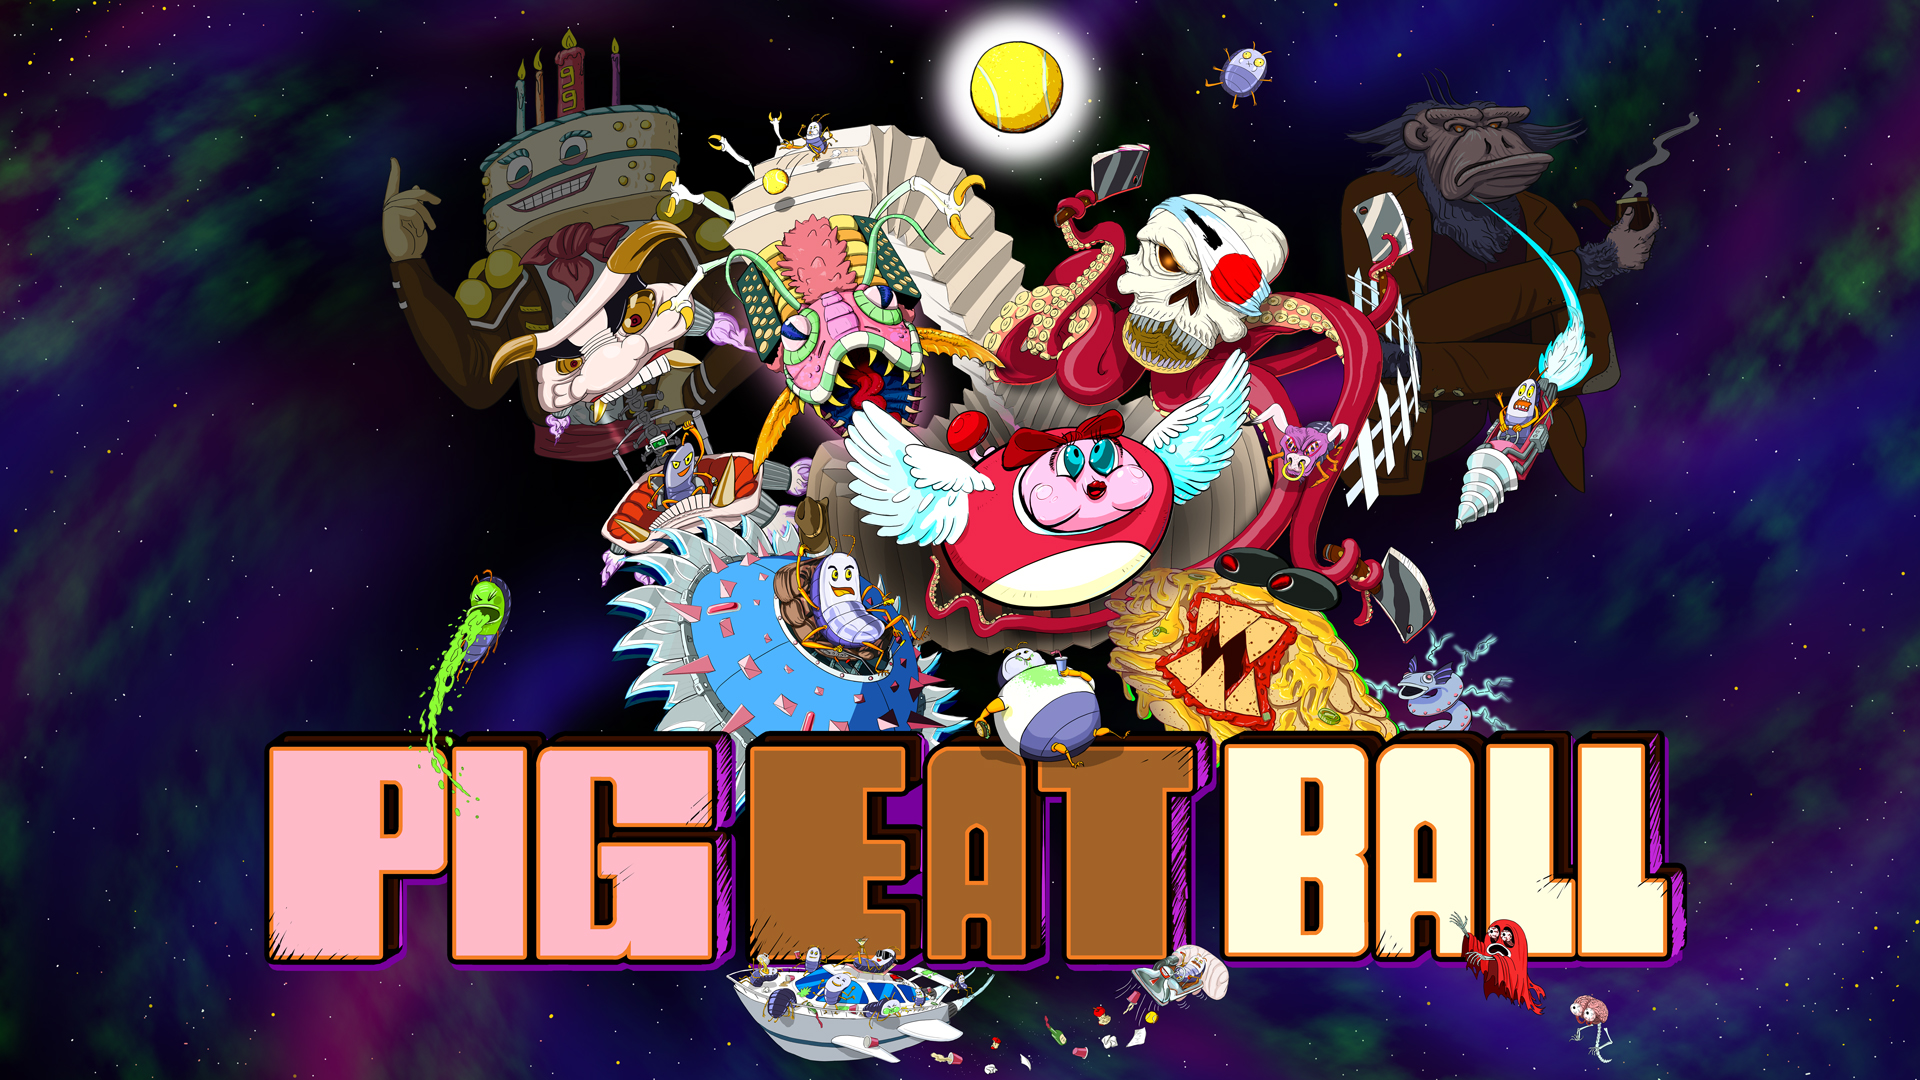 Pig Eat Ball Nintendo Switch